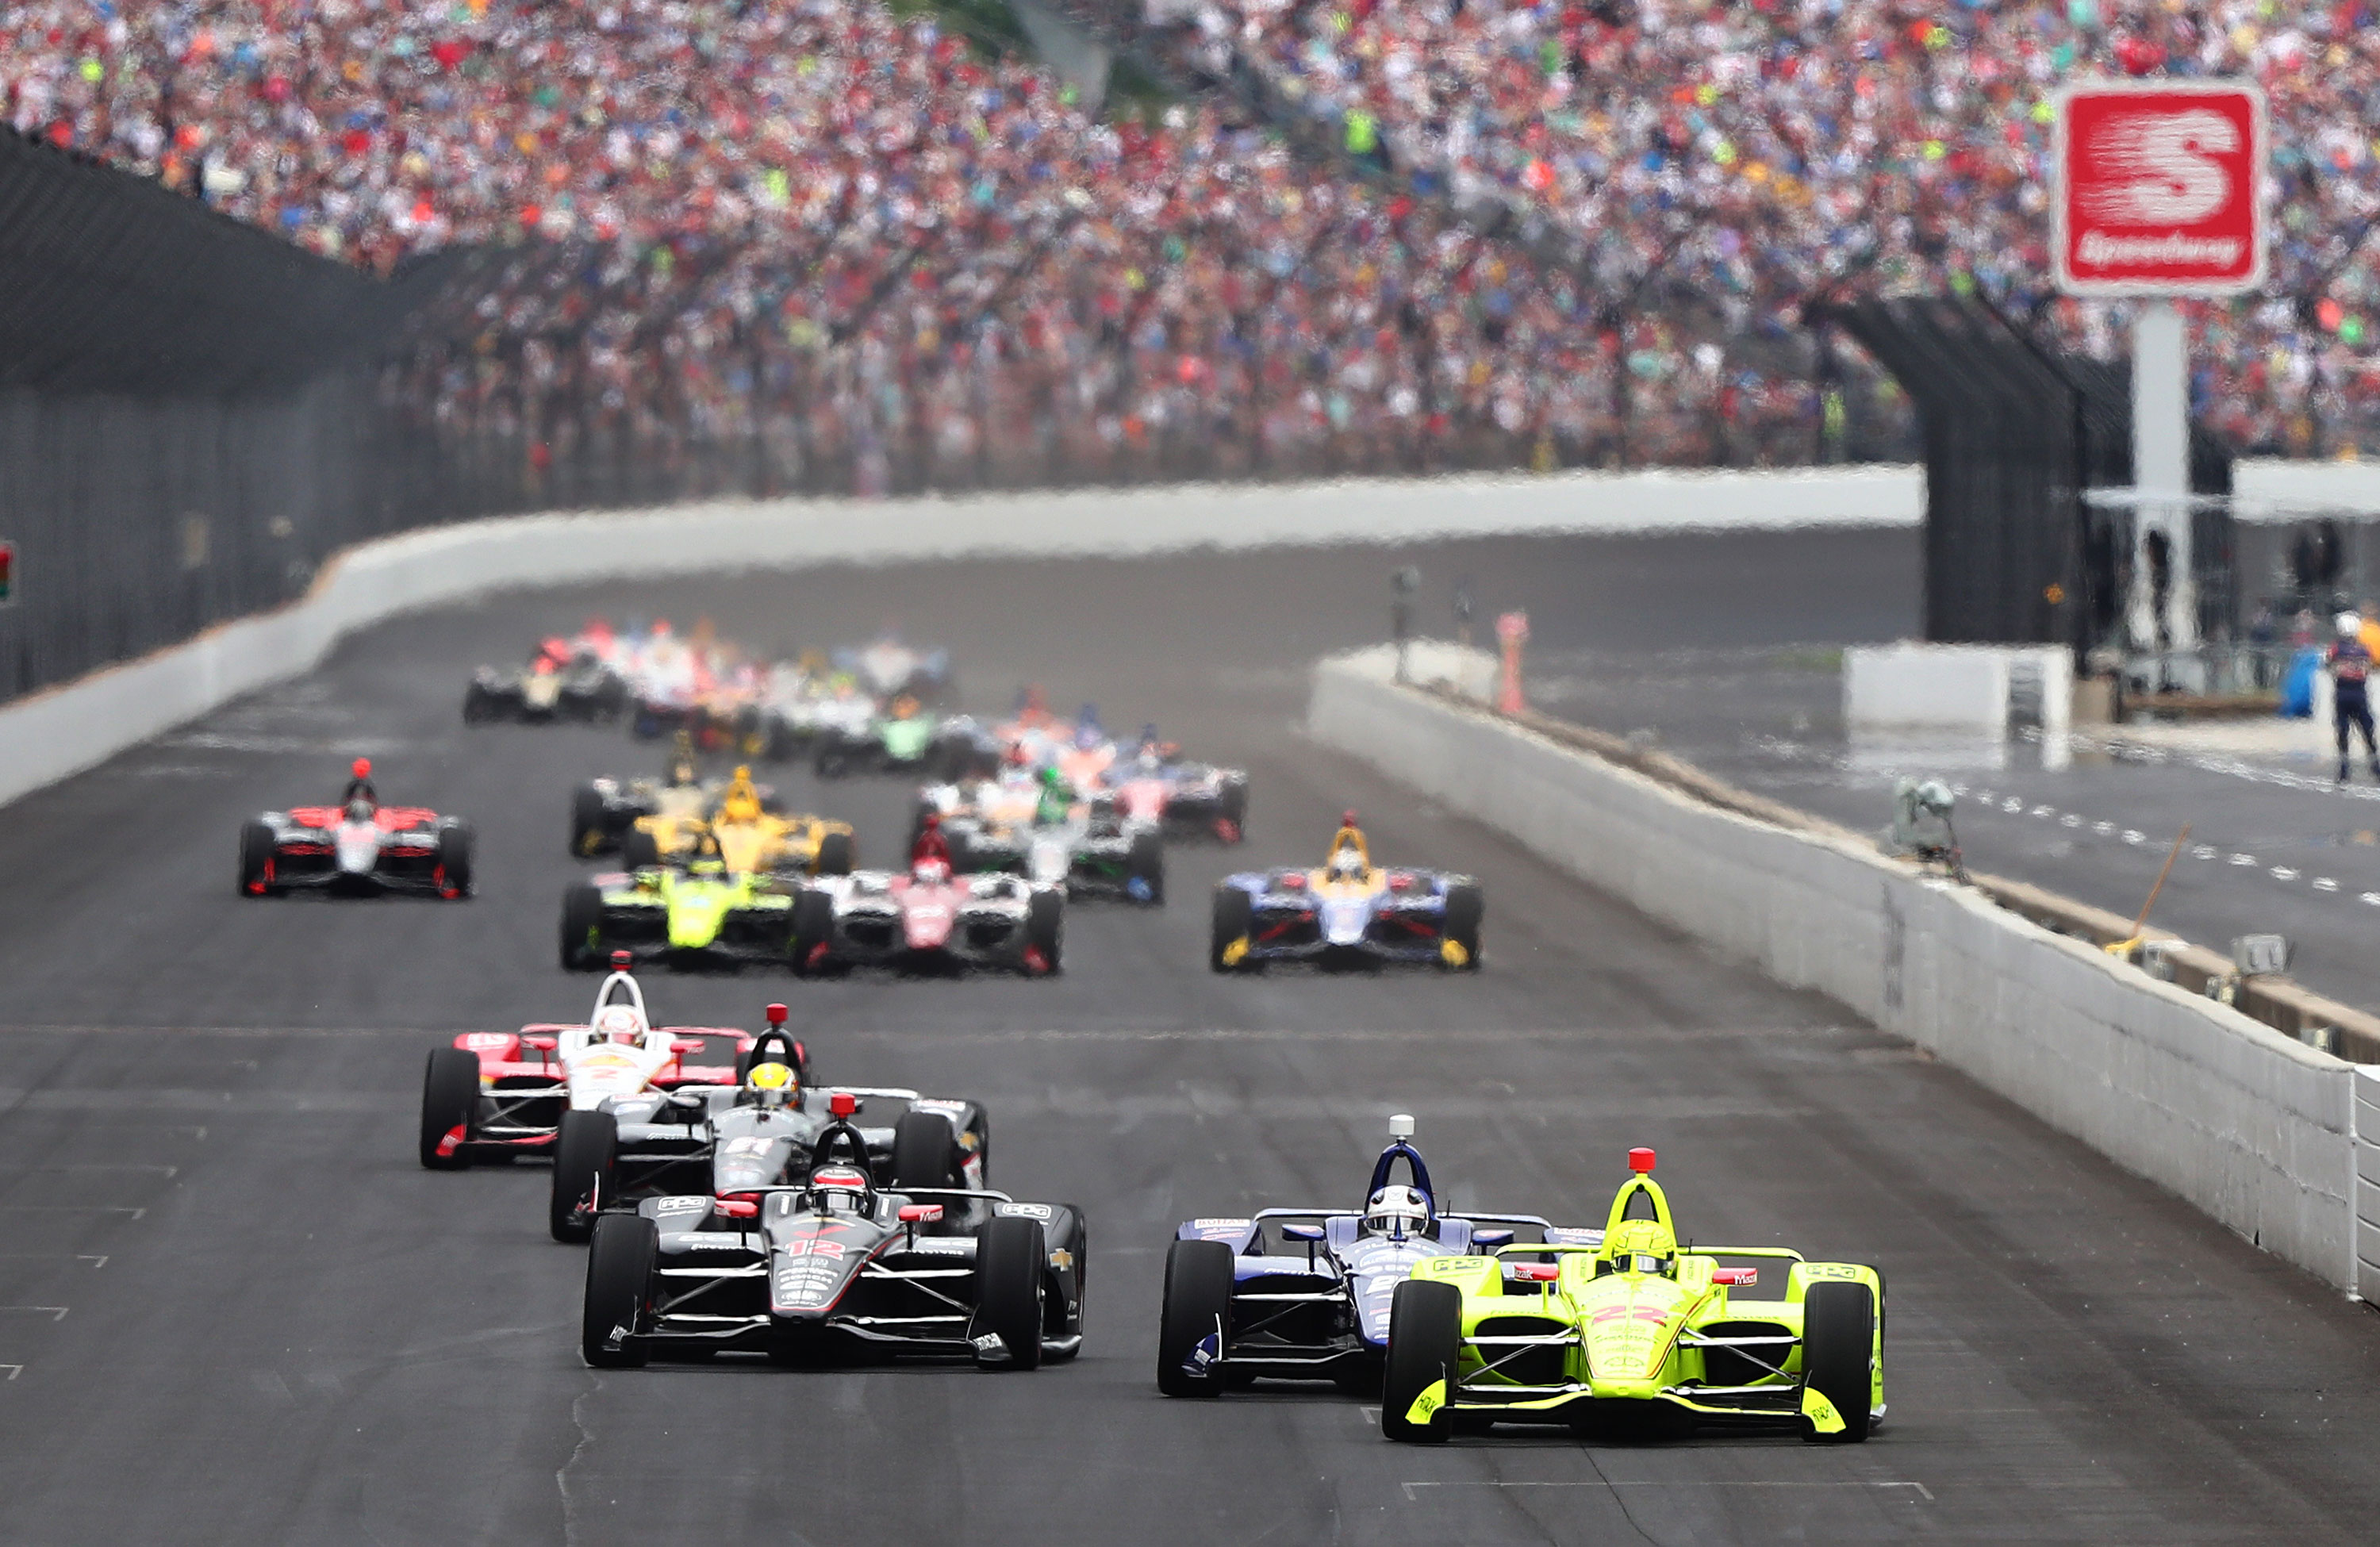 General view of the 103rd Indianapolis 500 on May 26, 2019 in Indianapolis, Indiana.